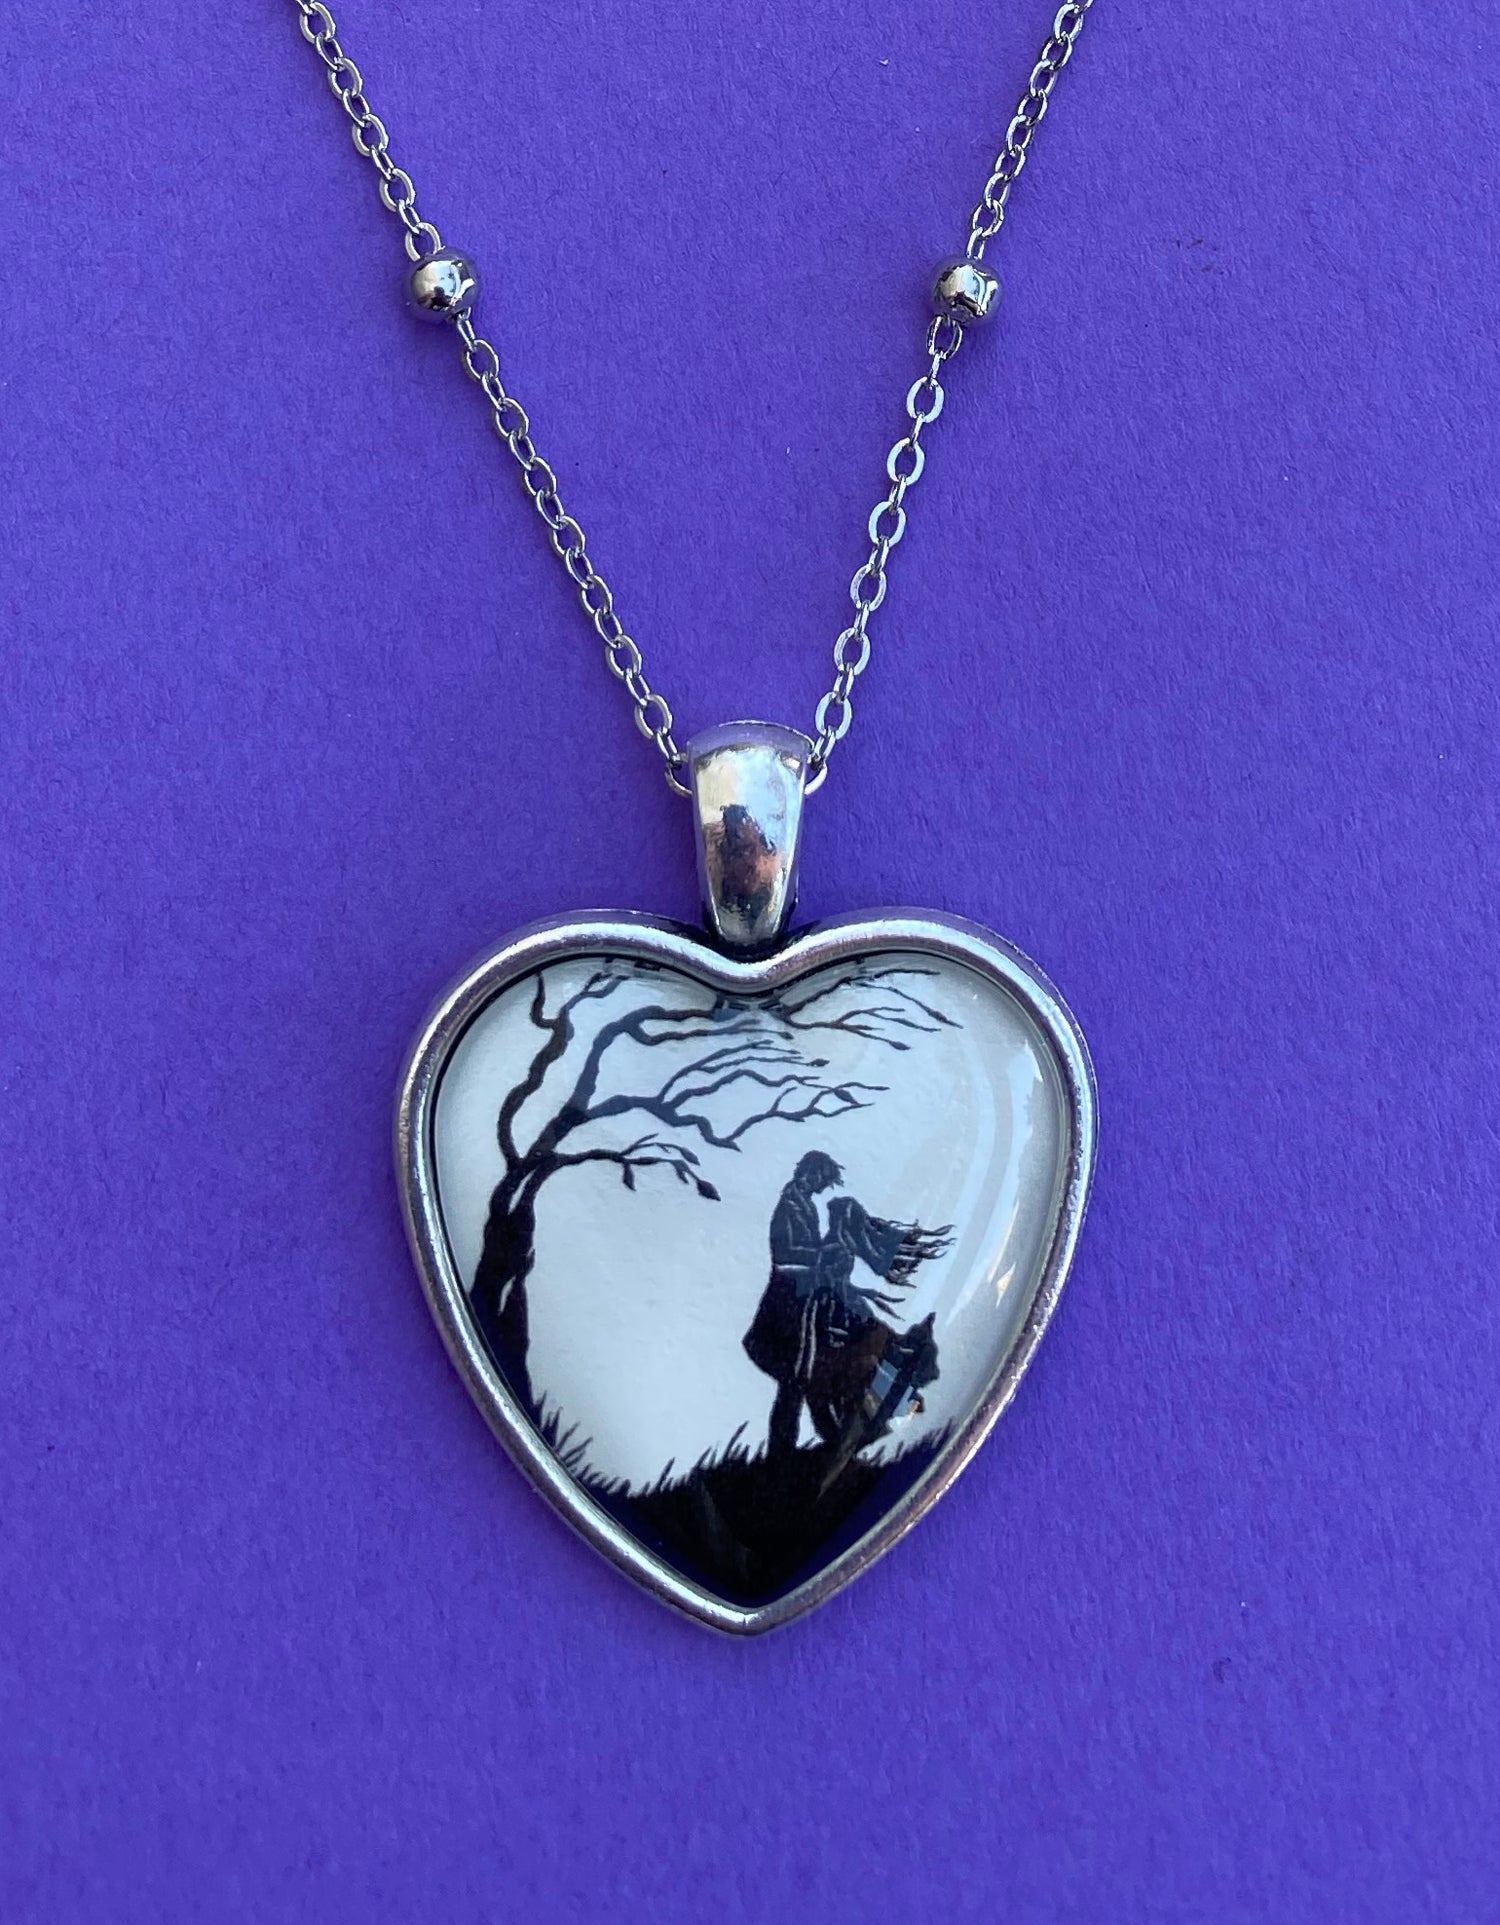 WUTHERING HEIGHTS Heart Necklace, pendant on chain - Silhouette Jewelry